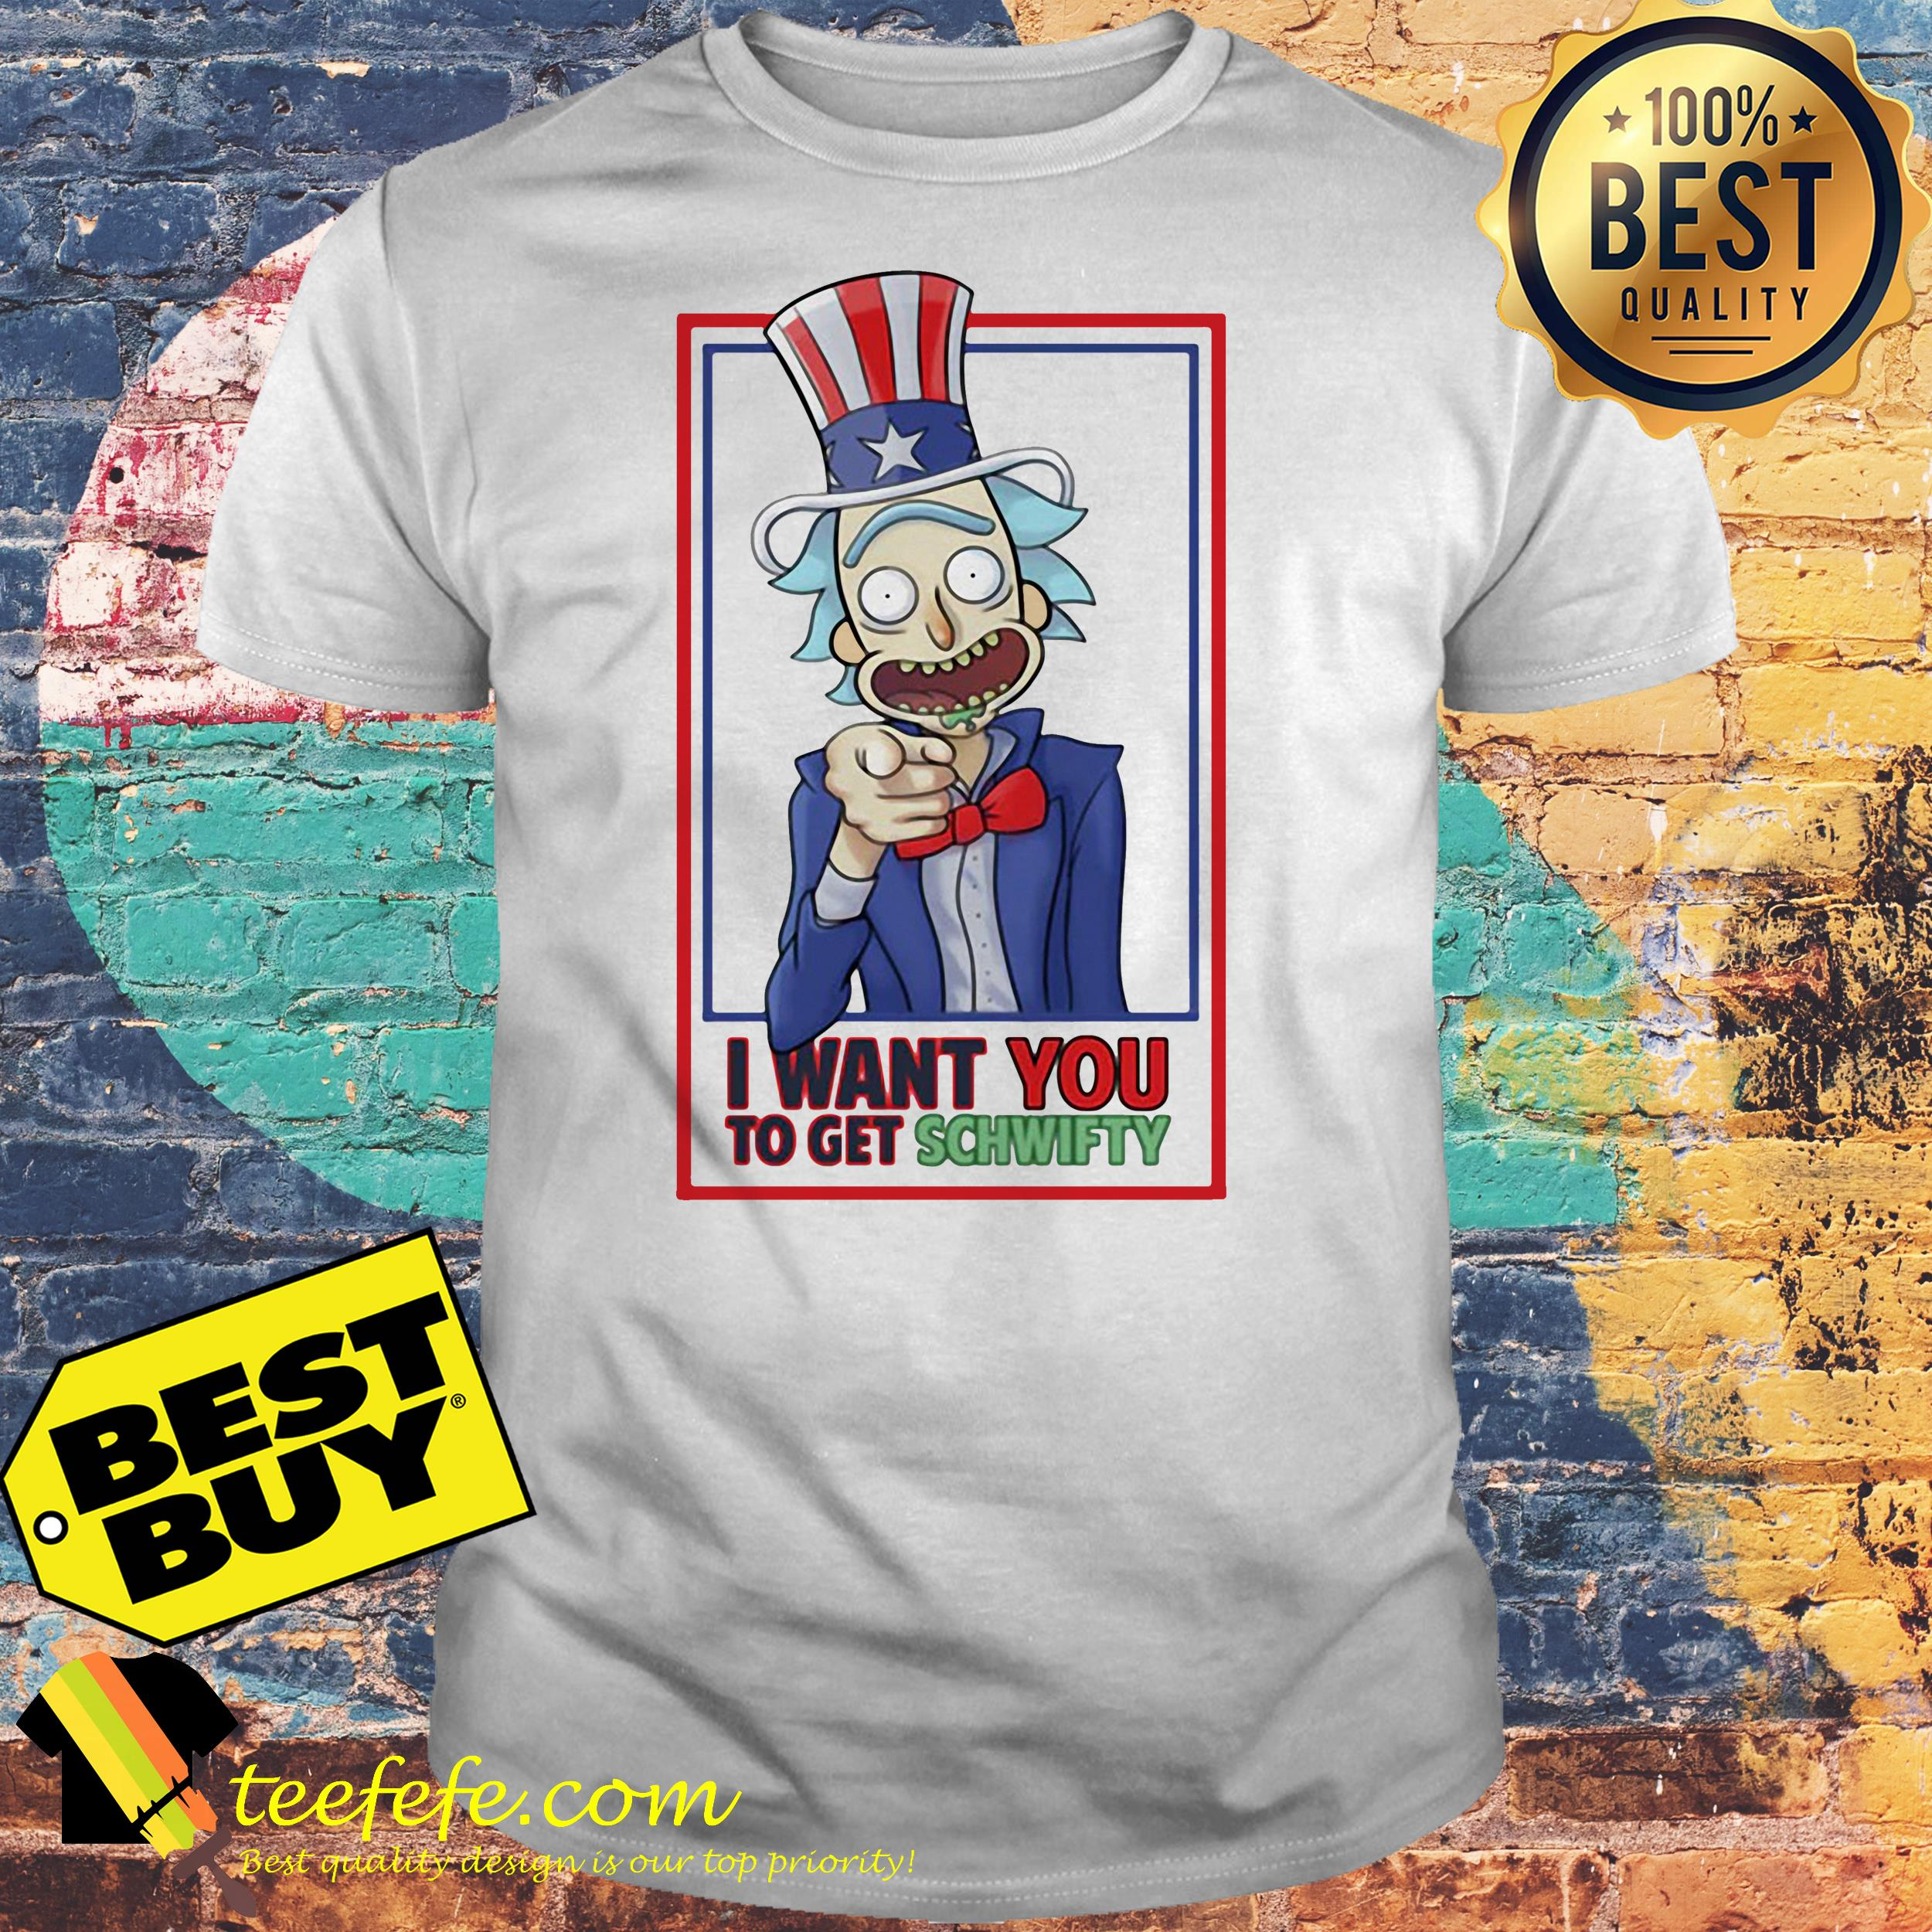 Rick Uncle I Want You To Get Schwifty Shirt